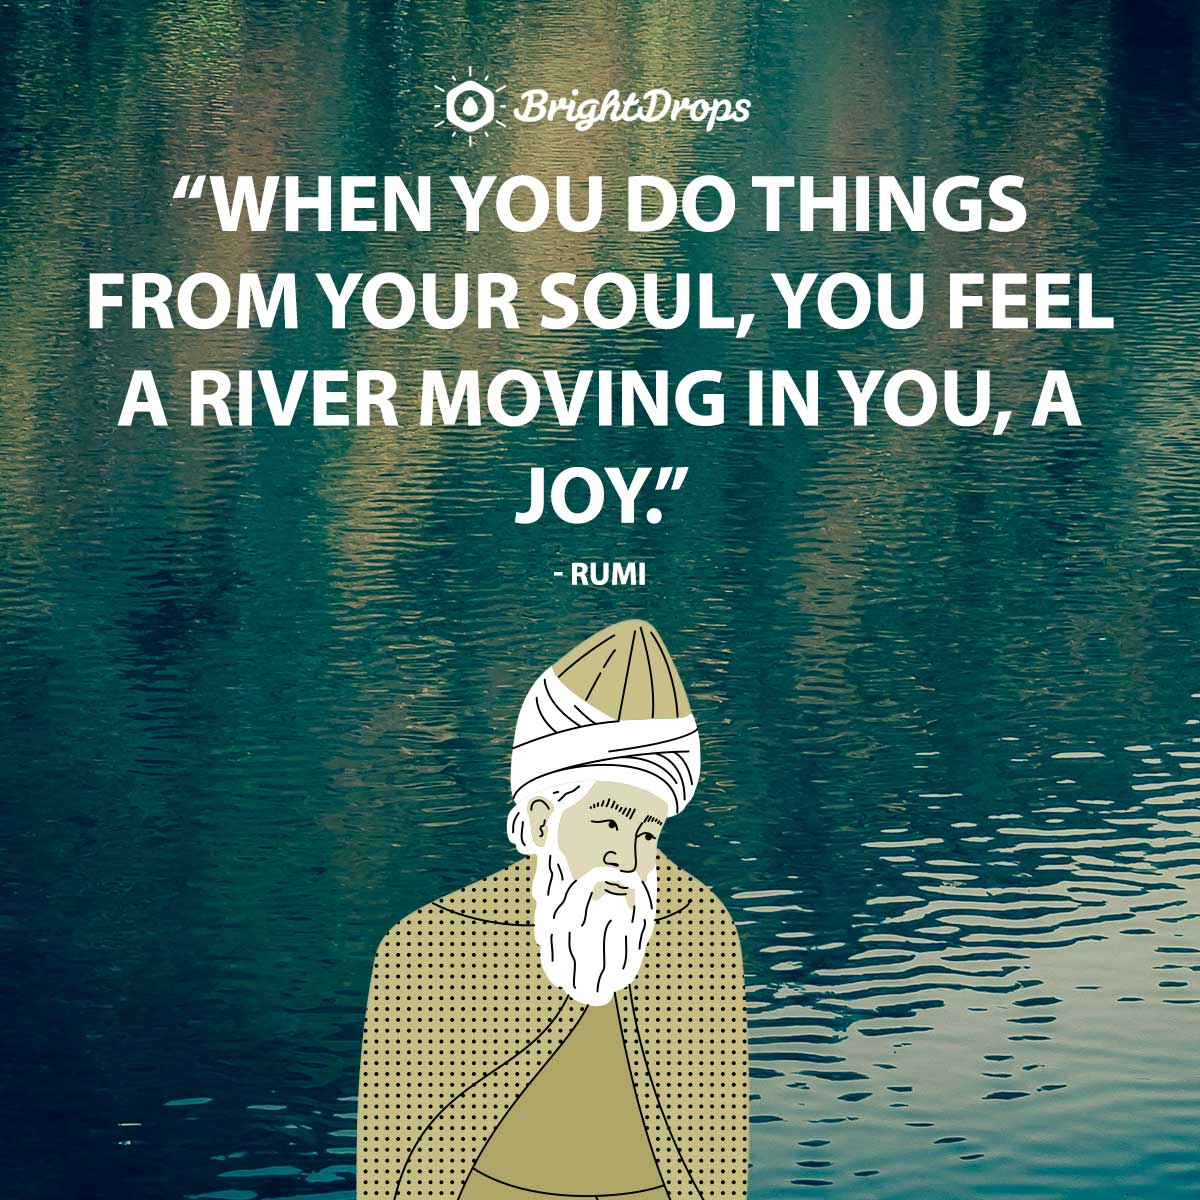 When you do things from your soul, you feel a river moving in you, a joy. - Rumi